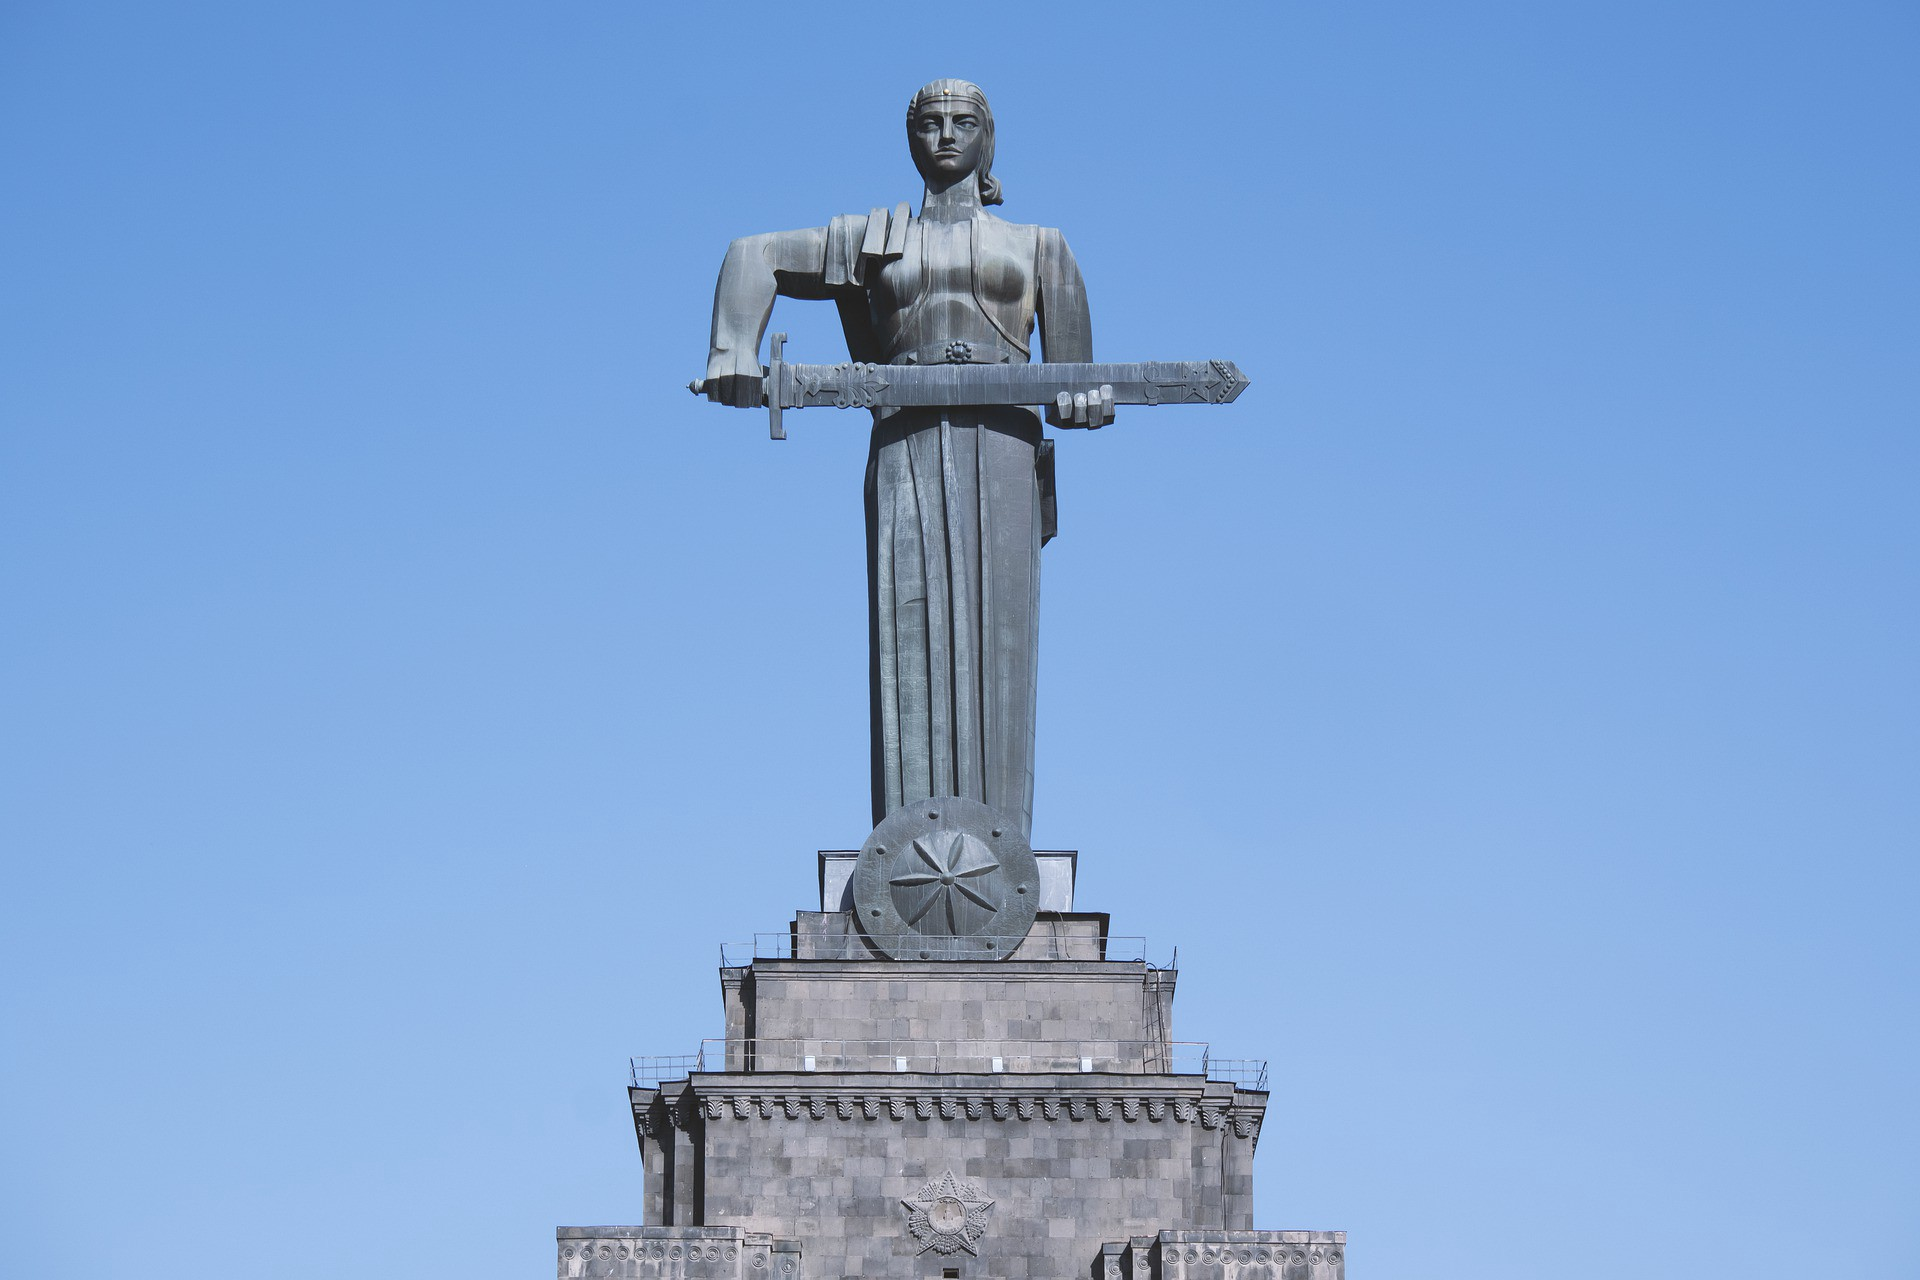 Statue of Mother Armenia defending her people and nation.